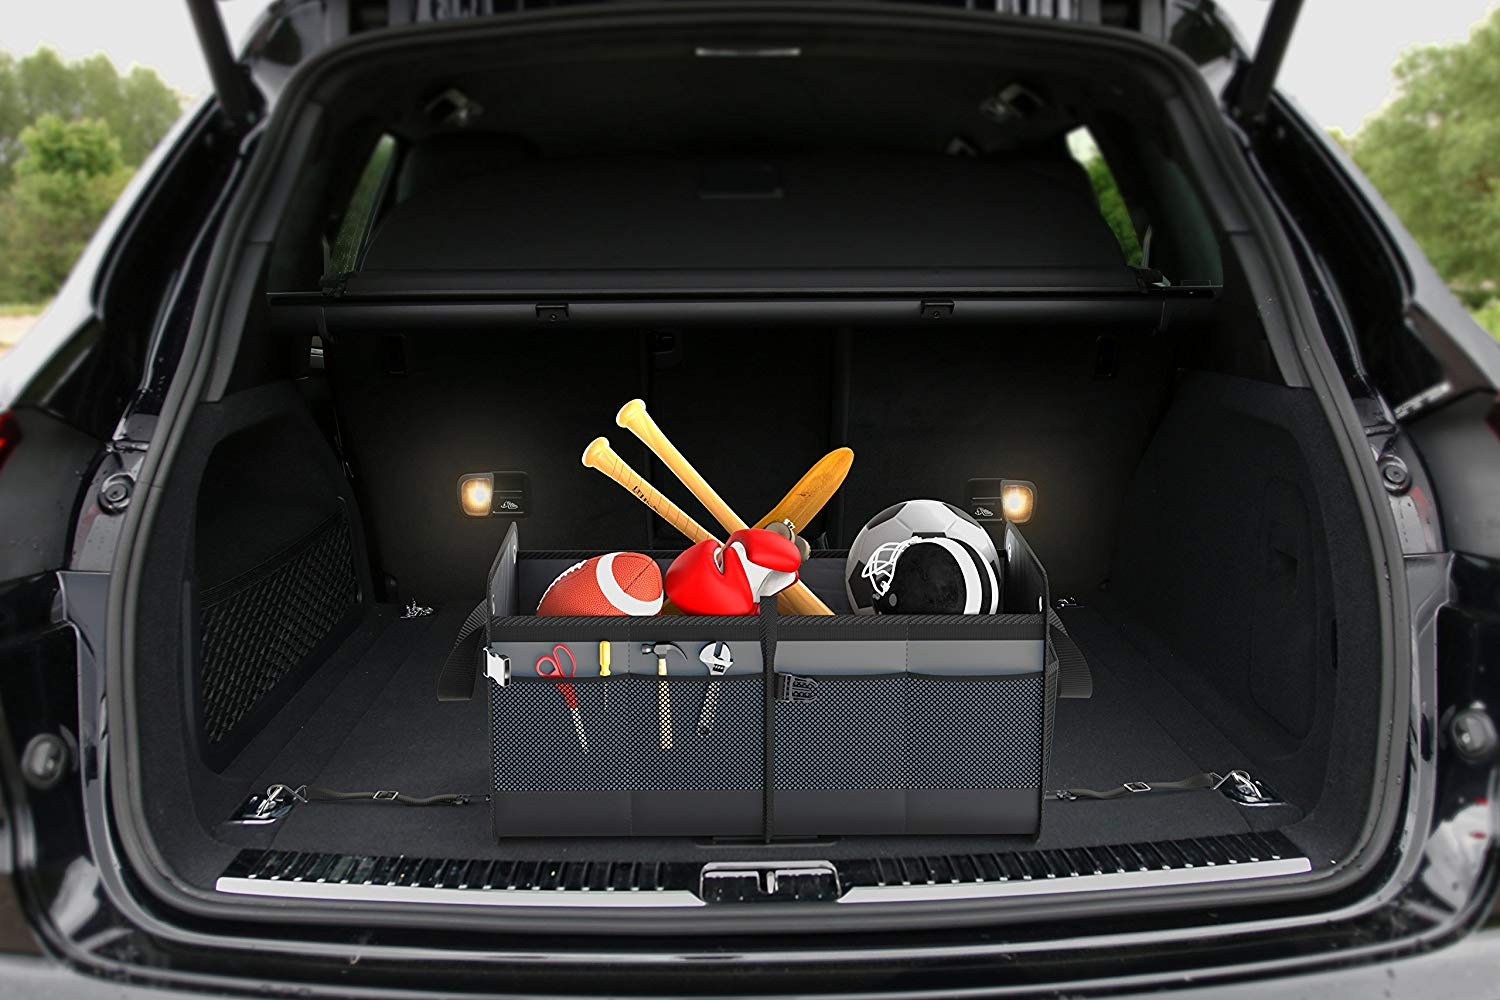 3 Compartment, Black Straps Foldable Cover Waterproof Non Slip Bottom Cargo Storage FORTEM Car Trunk Organizer